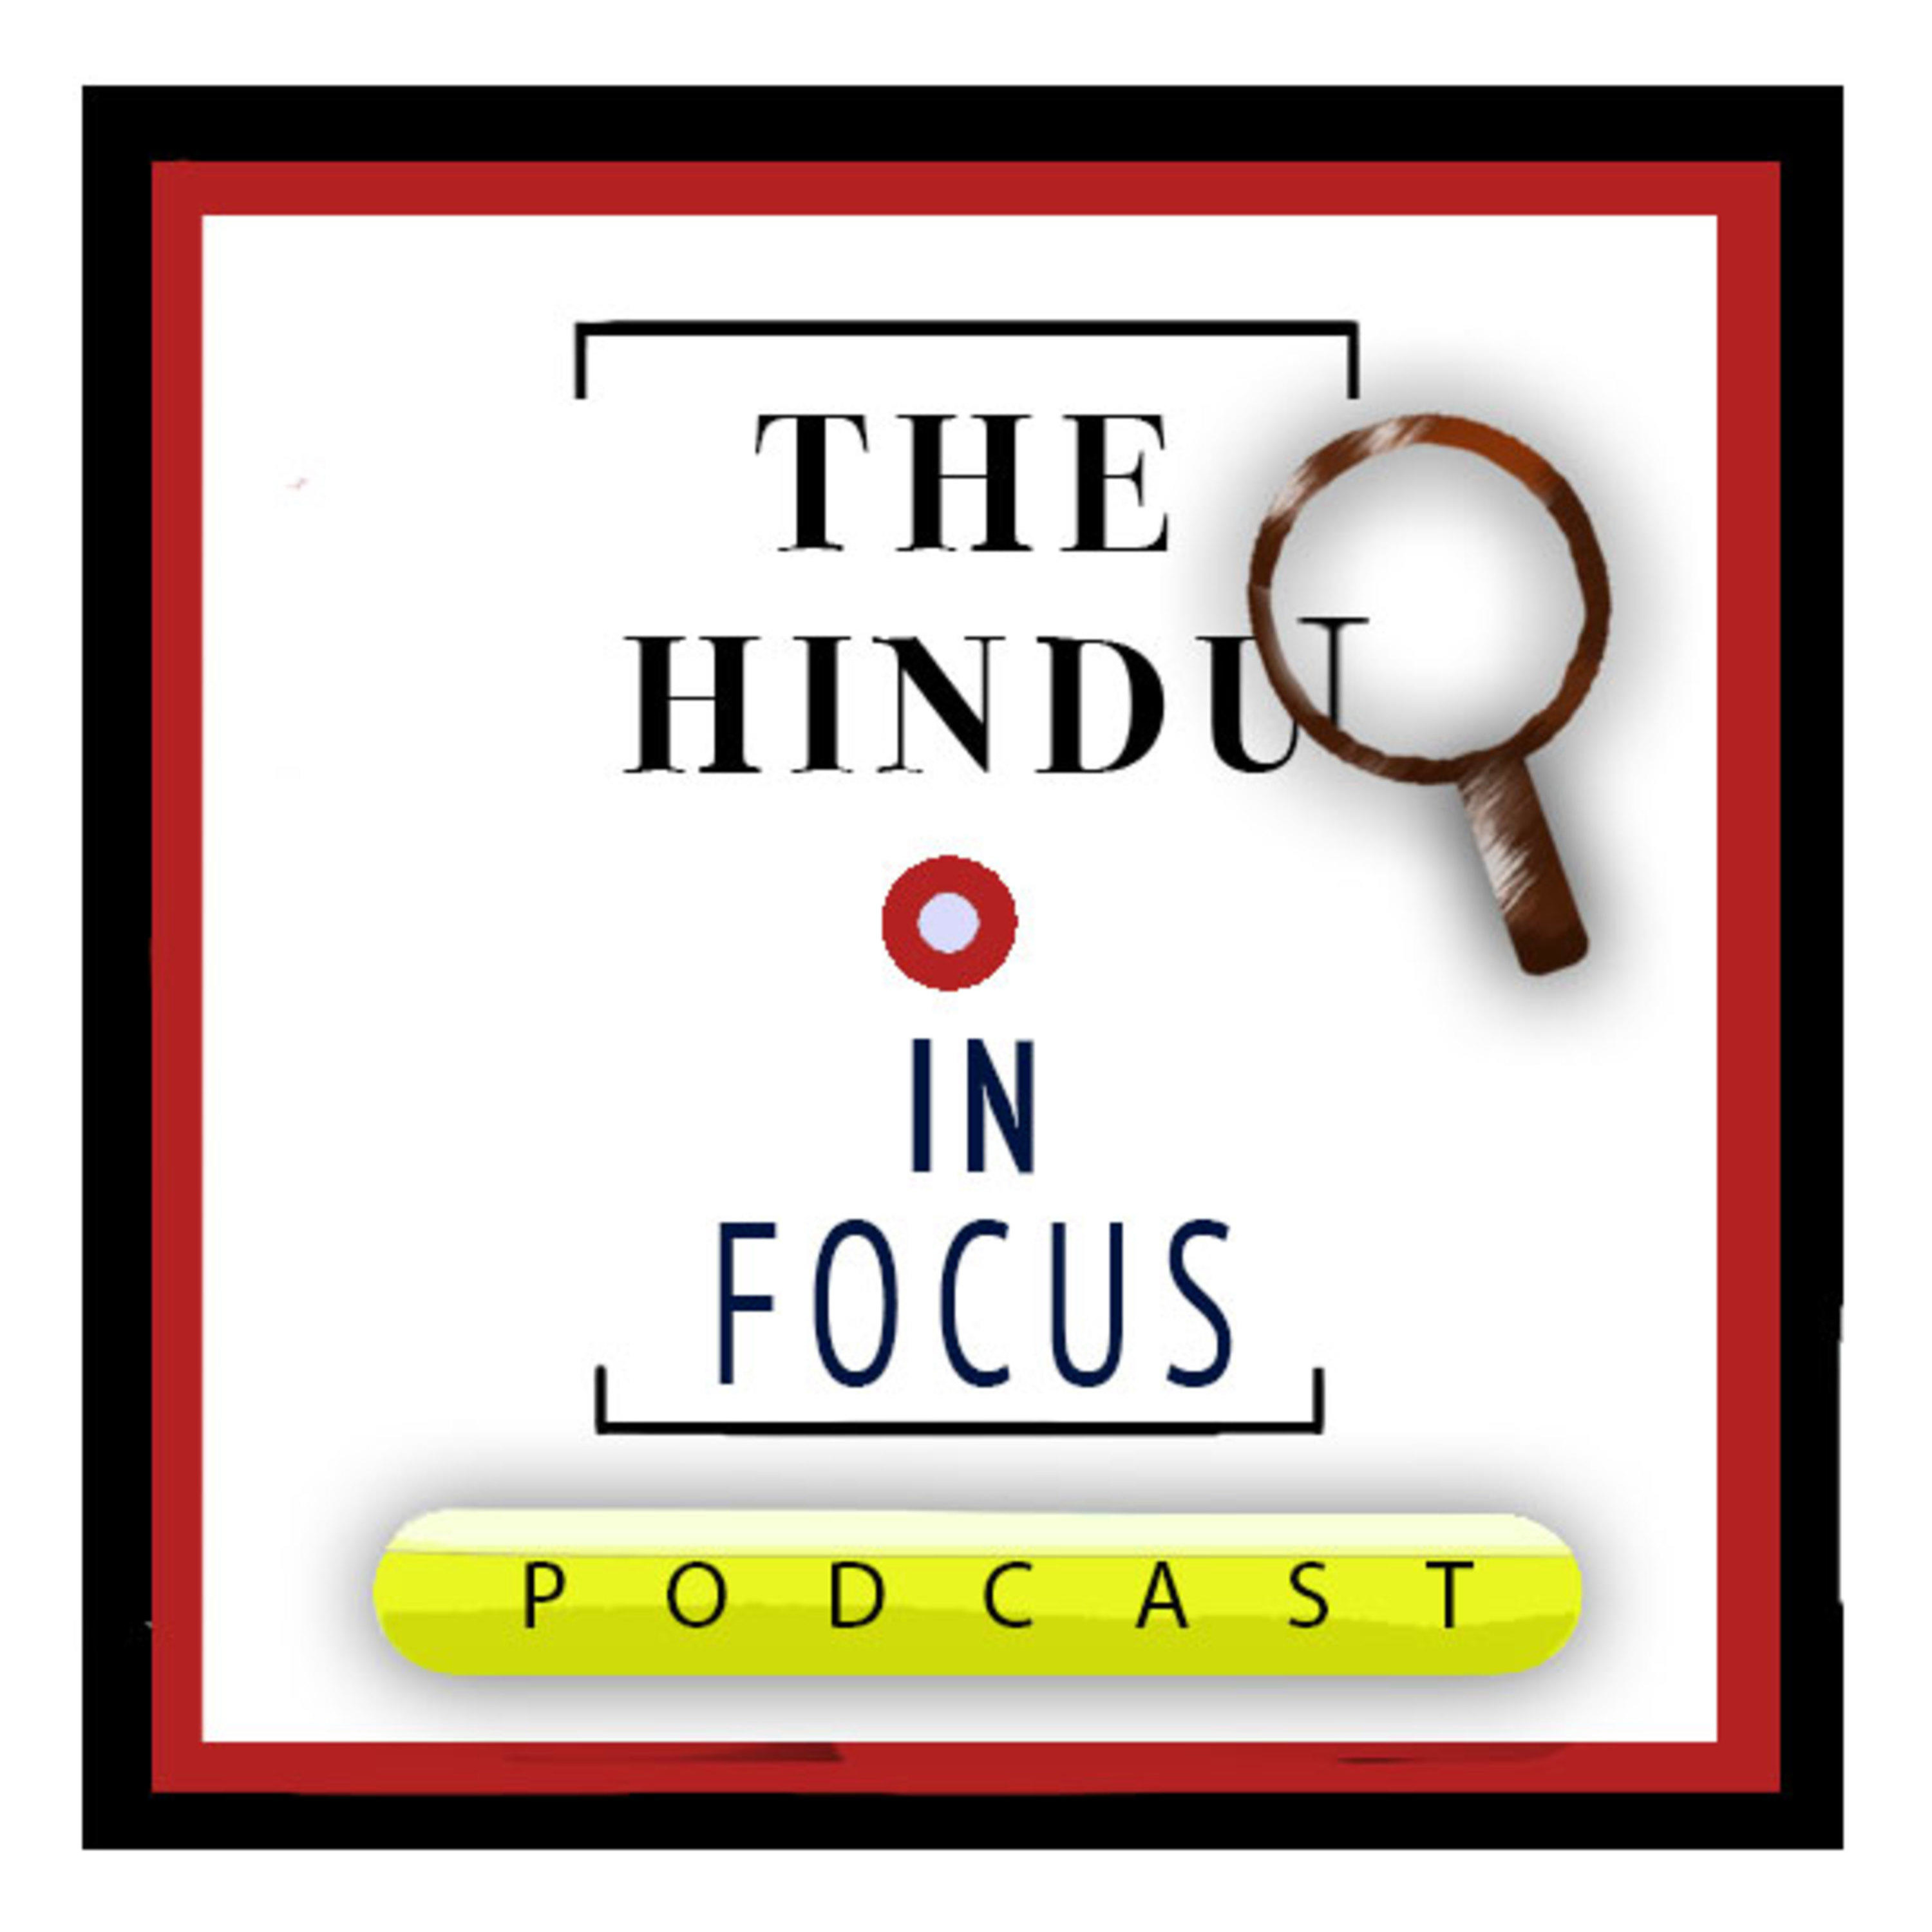 How the Israel-UAE peace agreement changes the game in the Middle East | The Hindu In Focus podcast